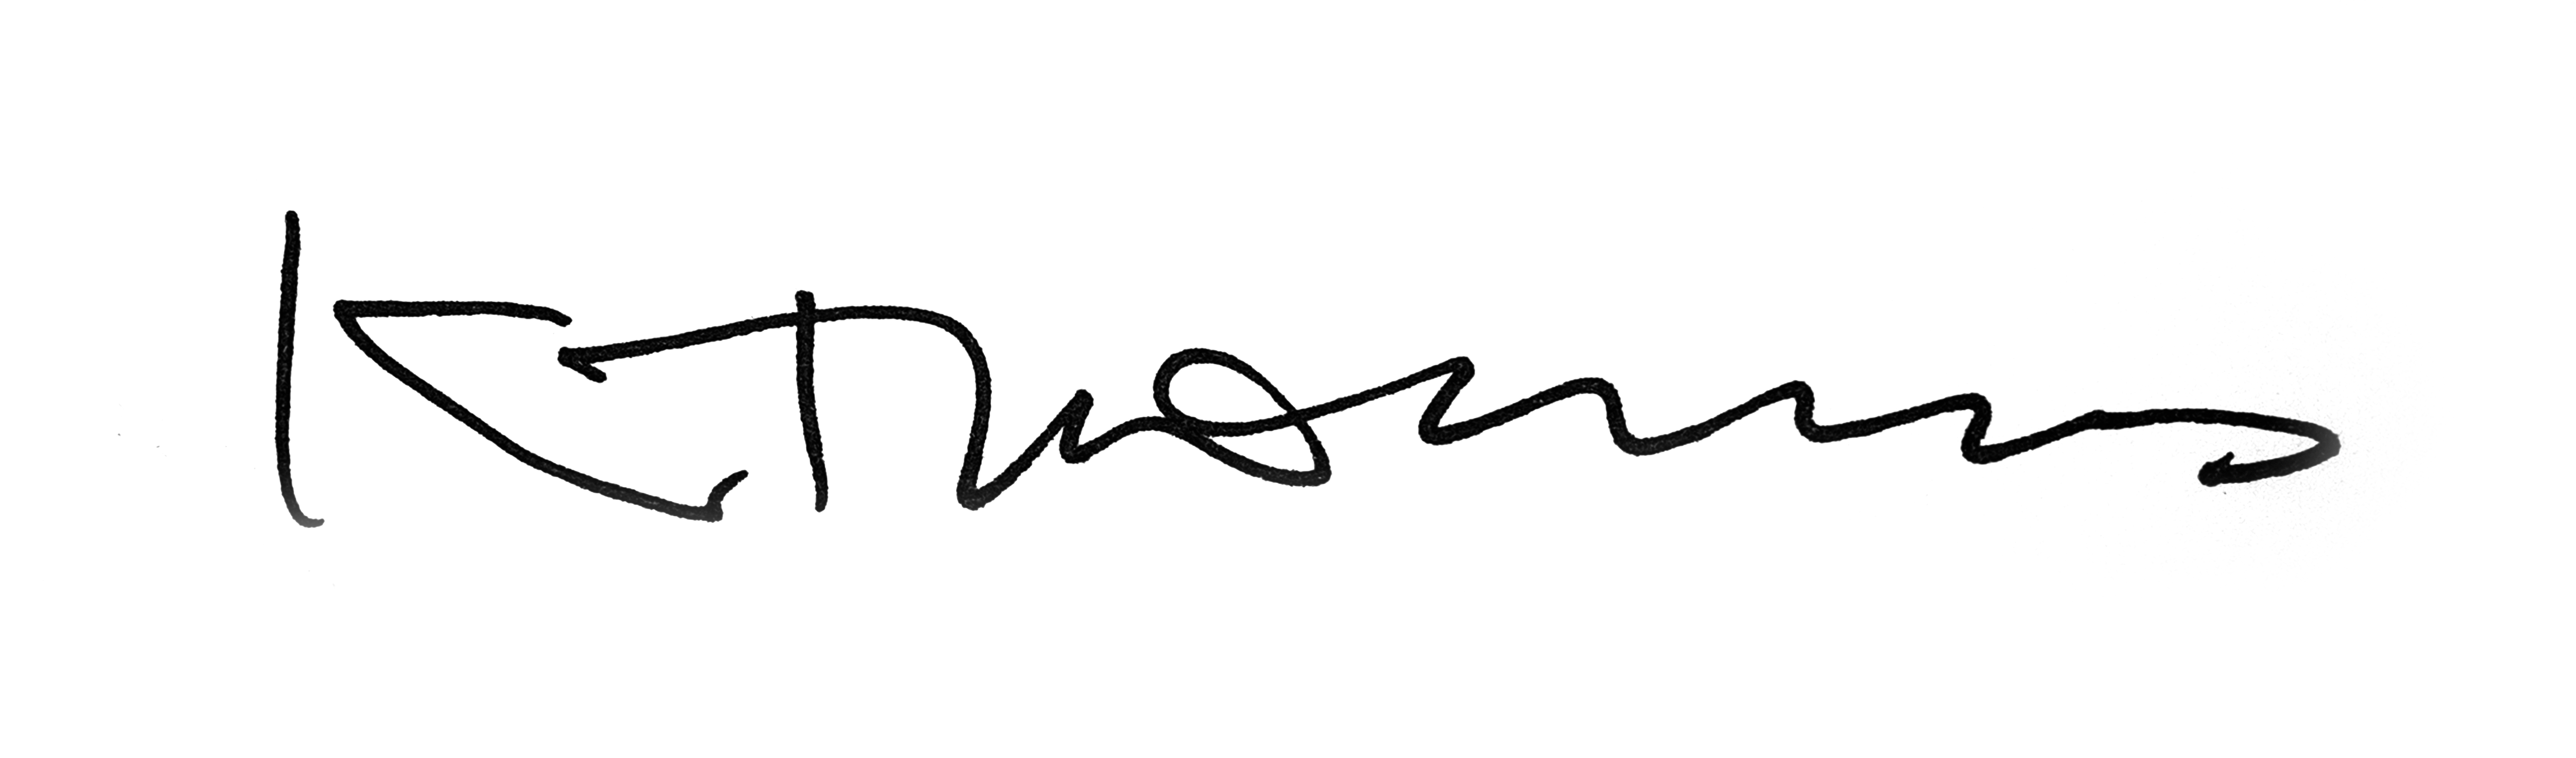 KAREN THOMAS's Signature